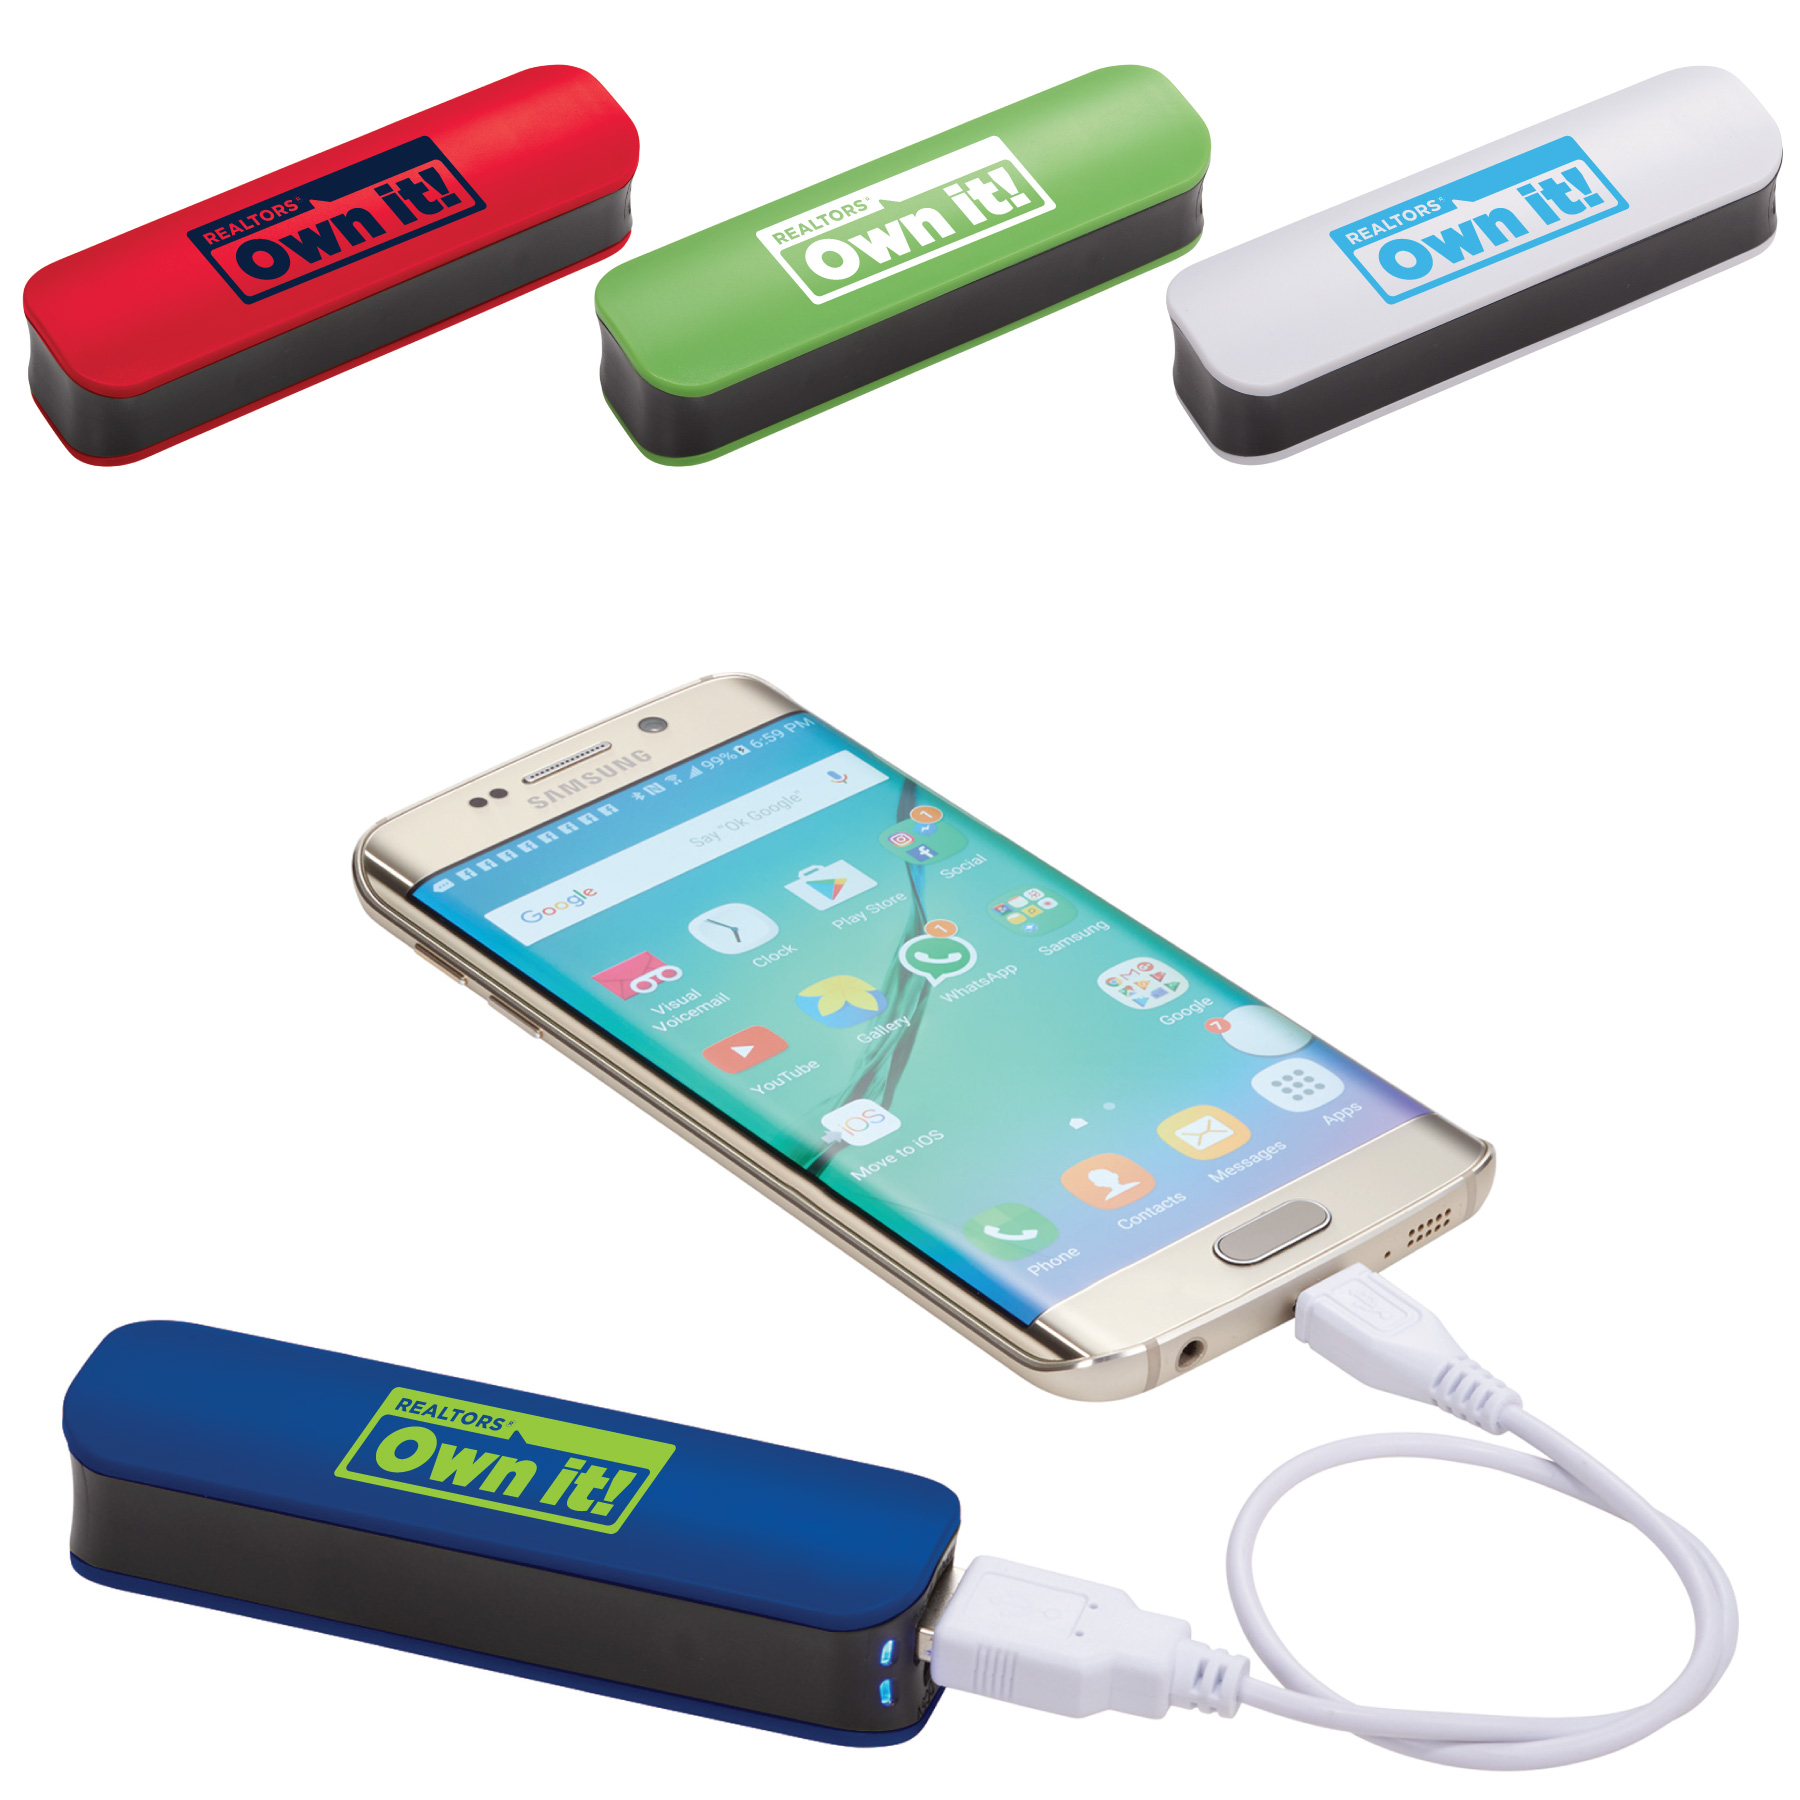 Hannen REALTORS® Own It! Power Bank (Special Order) Chargers,Powers,Banks,Batterys,Batteries,Jumps,Charges,Phones,iphones,Cords